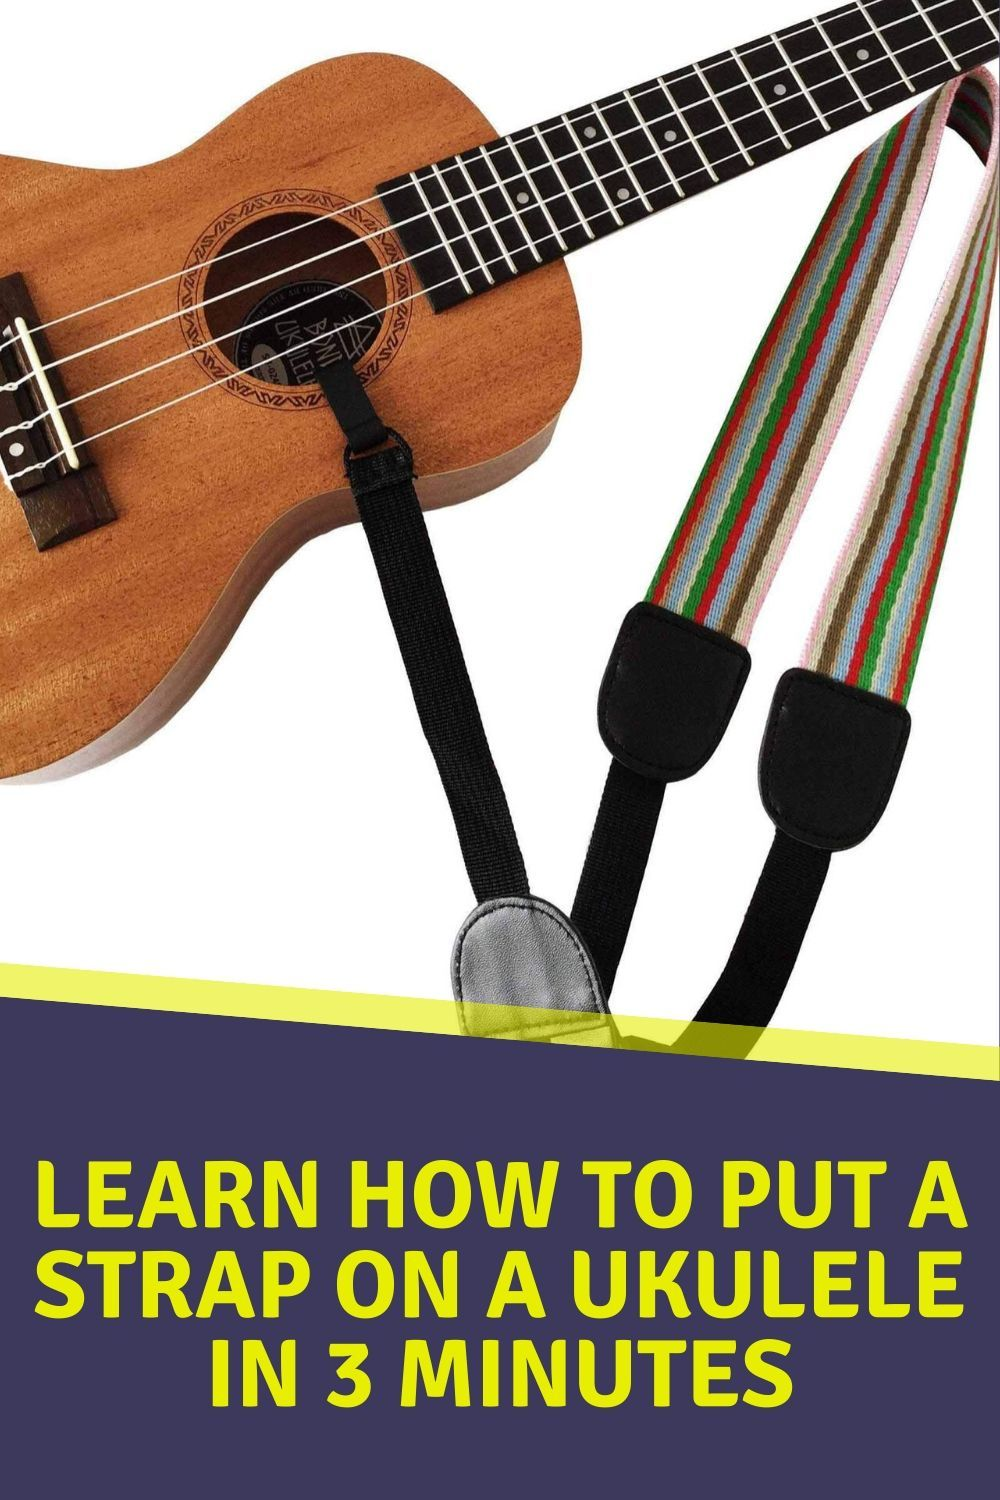 Learn How to Put a Strap on a Ukulele in 3 minutes in 2020